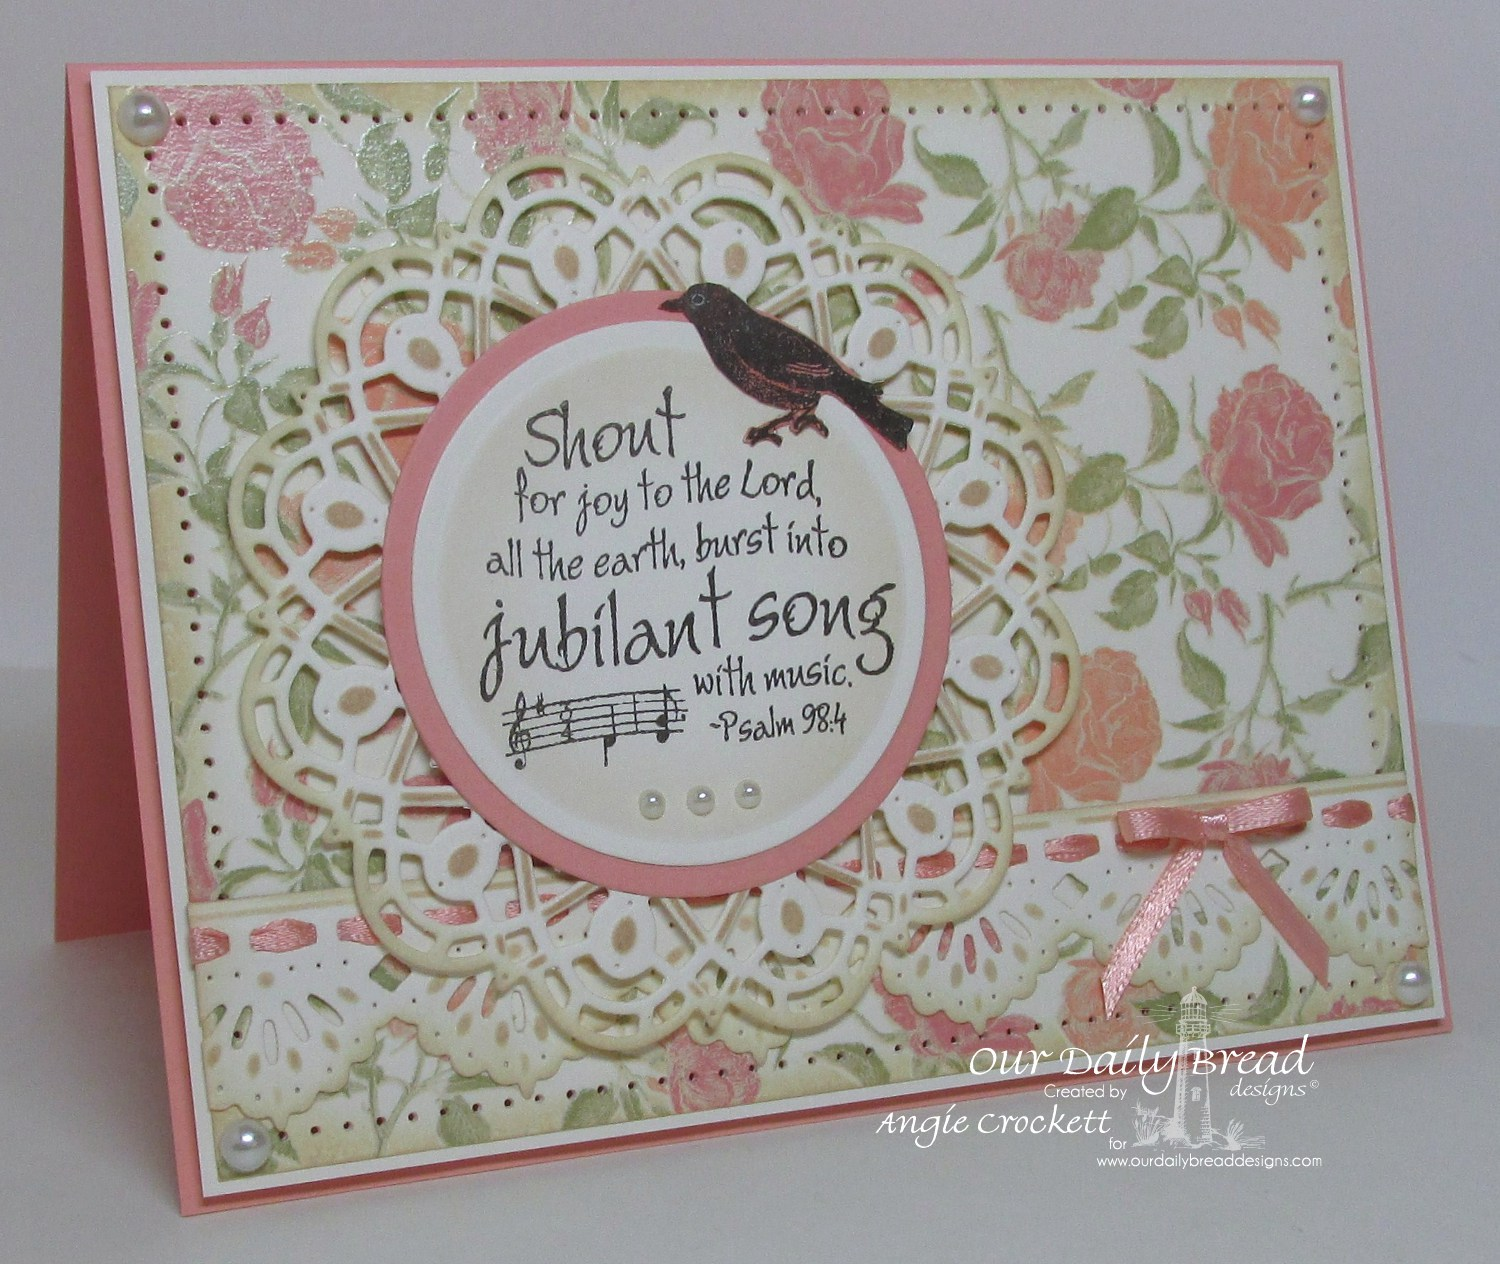 Stamps - Our Daily Bread Designs Music Speaks, ODBD Custom Beautiful Borders Dies, ODBD Custom Doily Dies